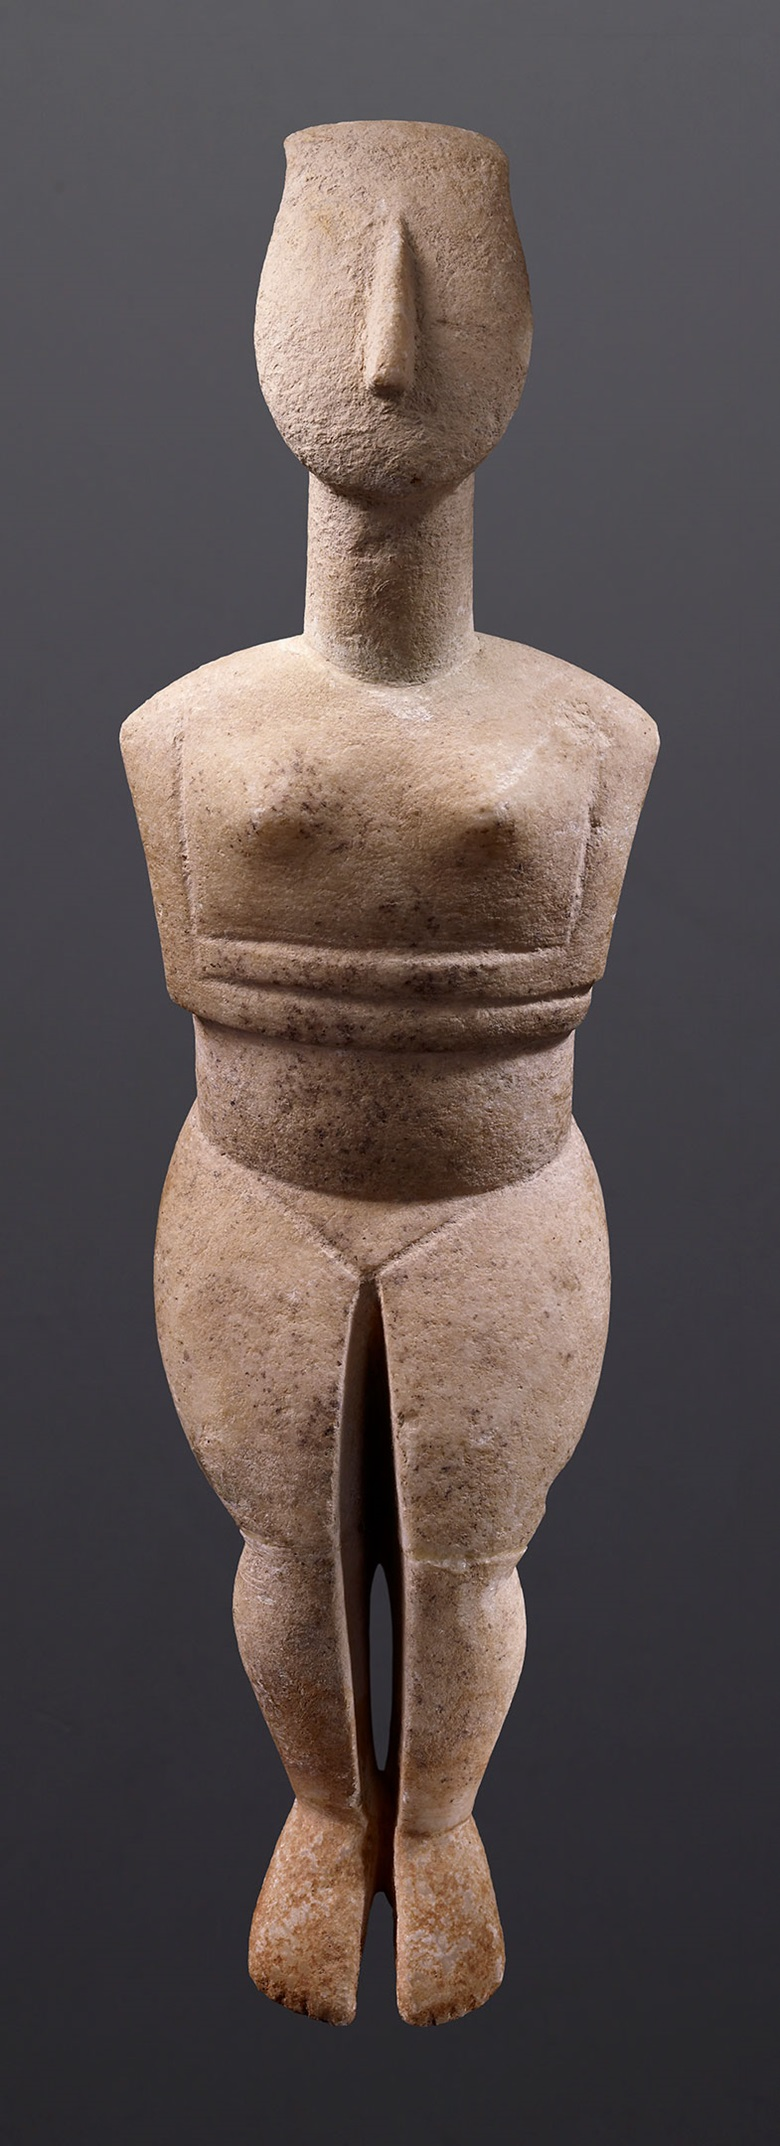 Female figure with folded arms, Greece, Cycladic period, circa 2300-2200 BC. To be displayed at the Musée Ariana, Geneva. Credit Studio Ferrazzini Bouchet–Musée Barbier-Mueller